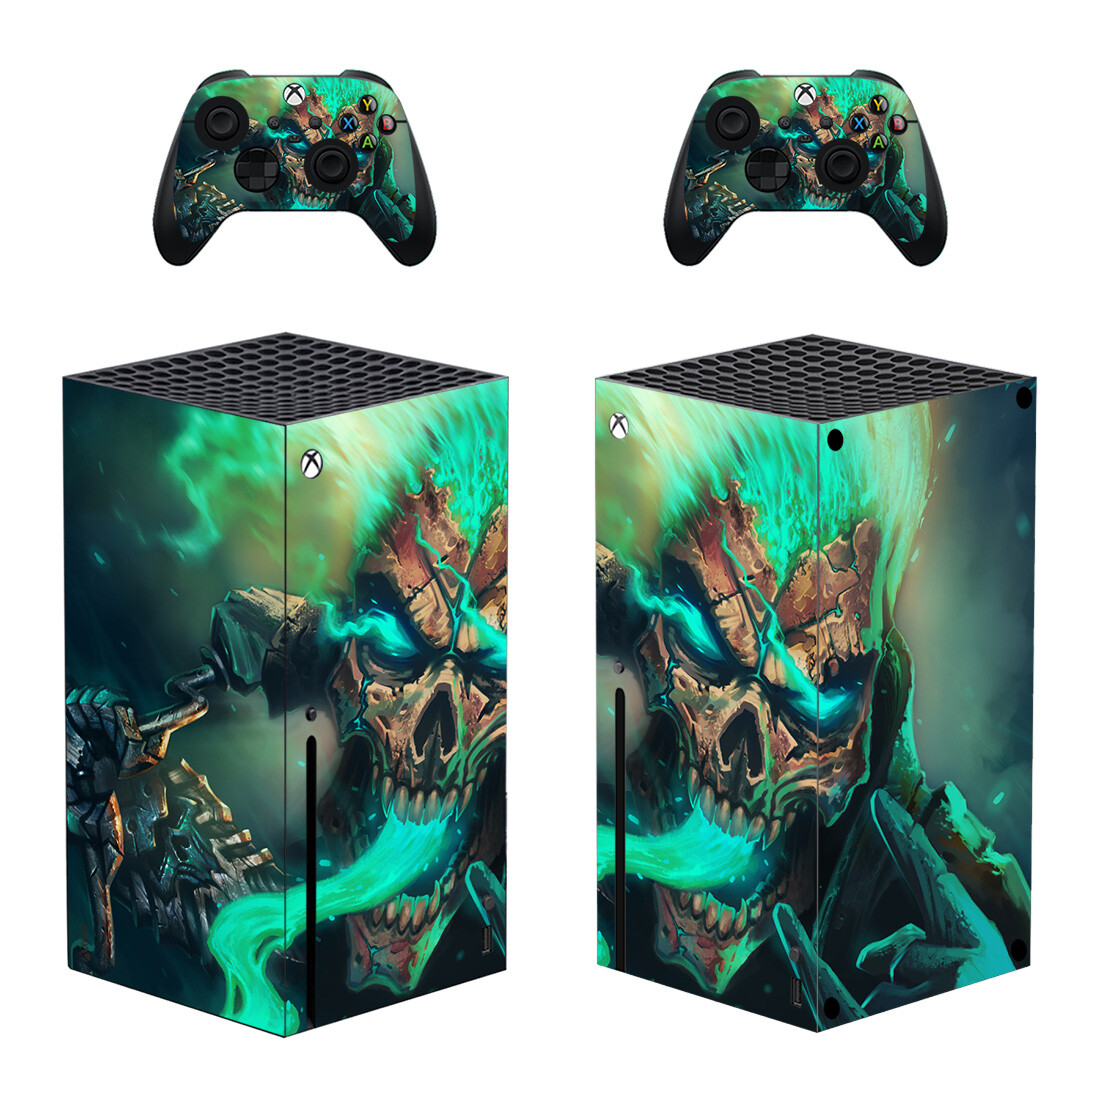 Green Flame Skull Skin Sticker For Xbox Series X And Controllers